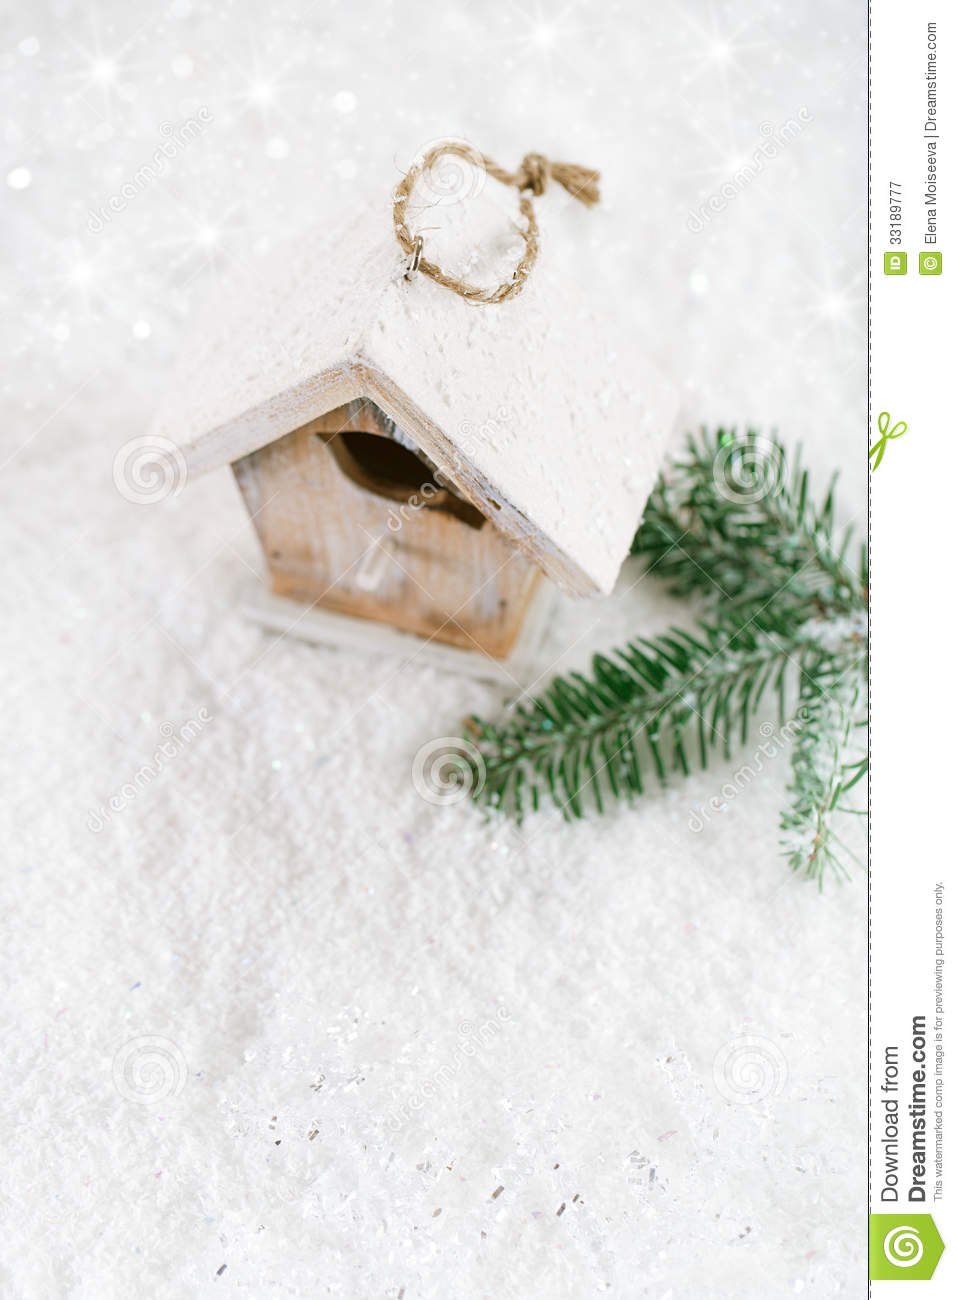 download wooden bird house christmas decoration on white snow background stock image image of christmas - Bird House Christmas Decoration